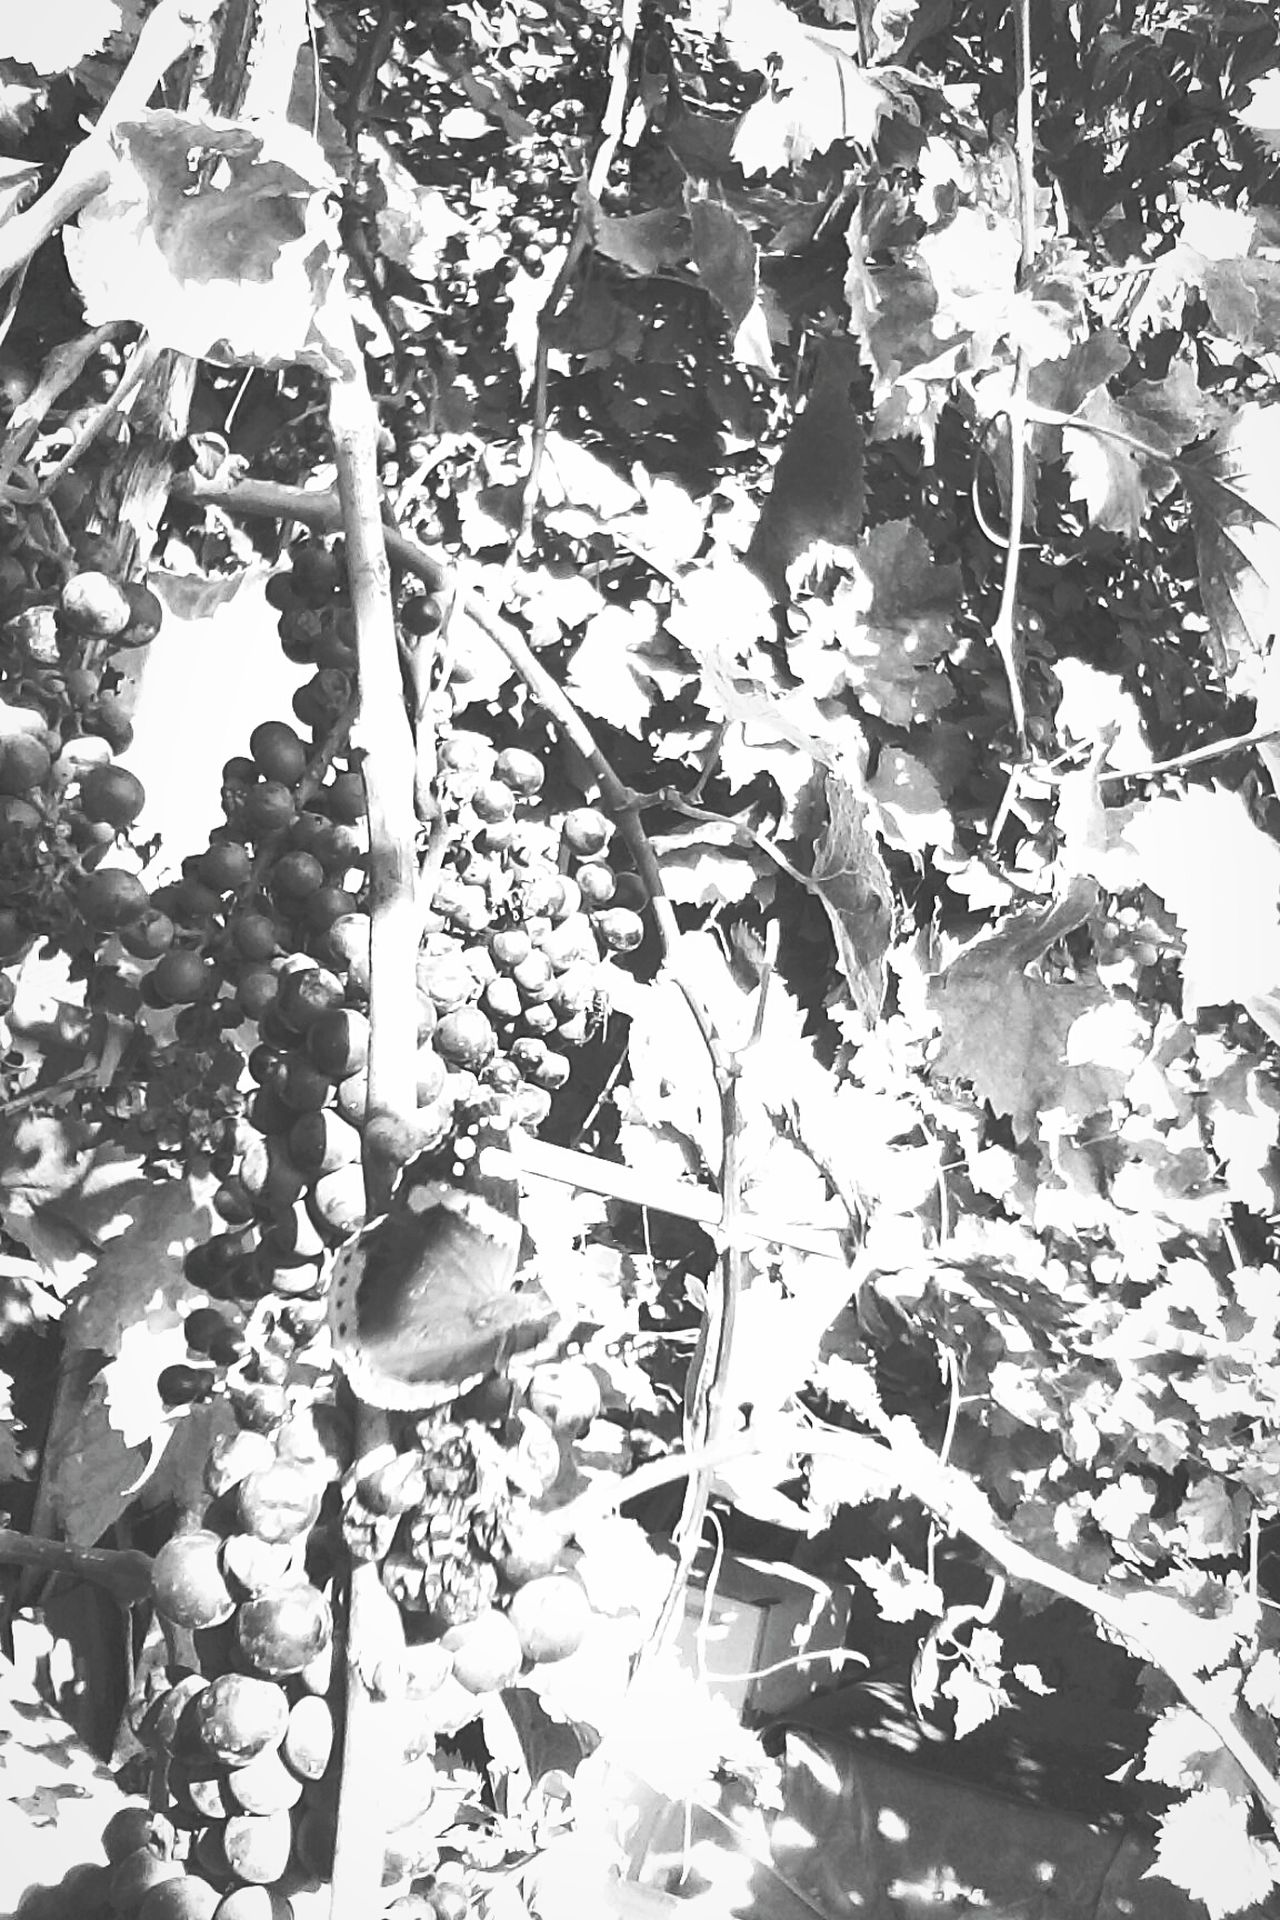 Plant Nature Close-up Grape Vineyard Insect Butterfly Butterfly - Insect Slowfood Fruits Grapes @wolfzuachis Showcase: 2016 Showcase: October Ionitaveronica Eyeem Market Wolfzuachis Leaves Leafs Vines Monocrome Monocrome Photography Monocromephotohraphy Black & White Monochrome Photography